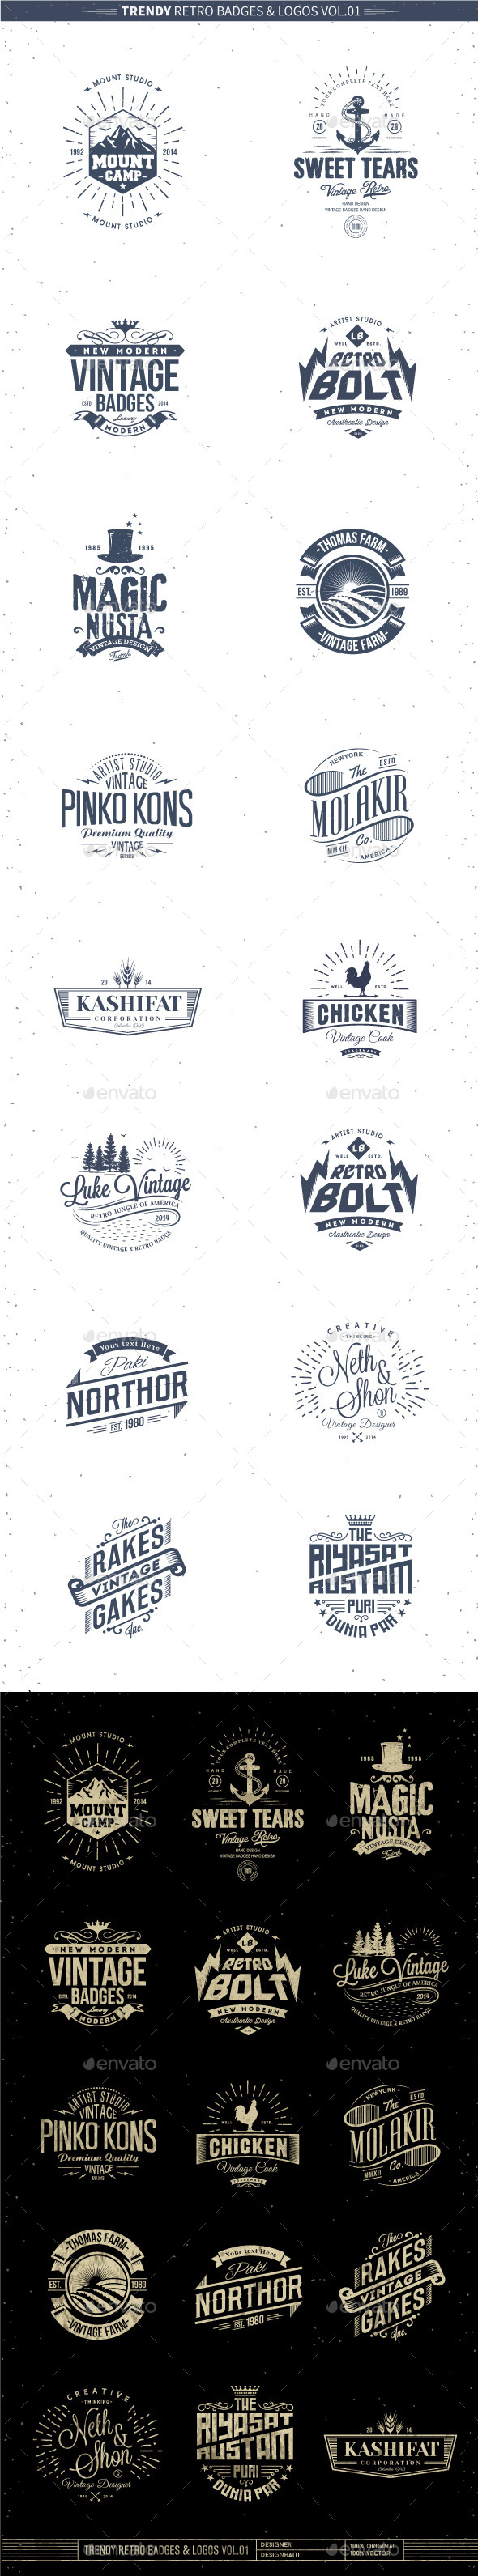 GraphicRiver Trendy Retro Badges and Logos Vol.01 10358811